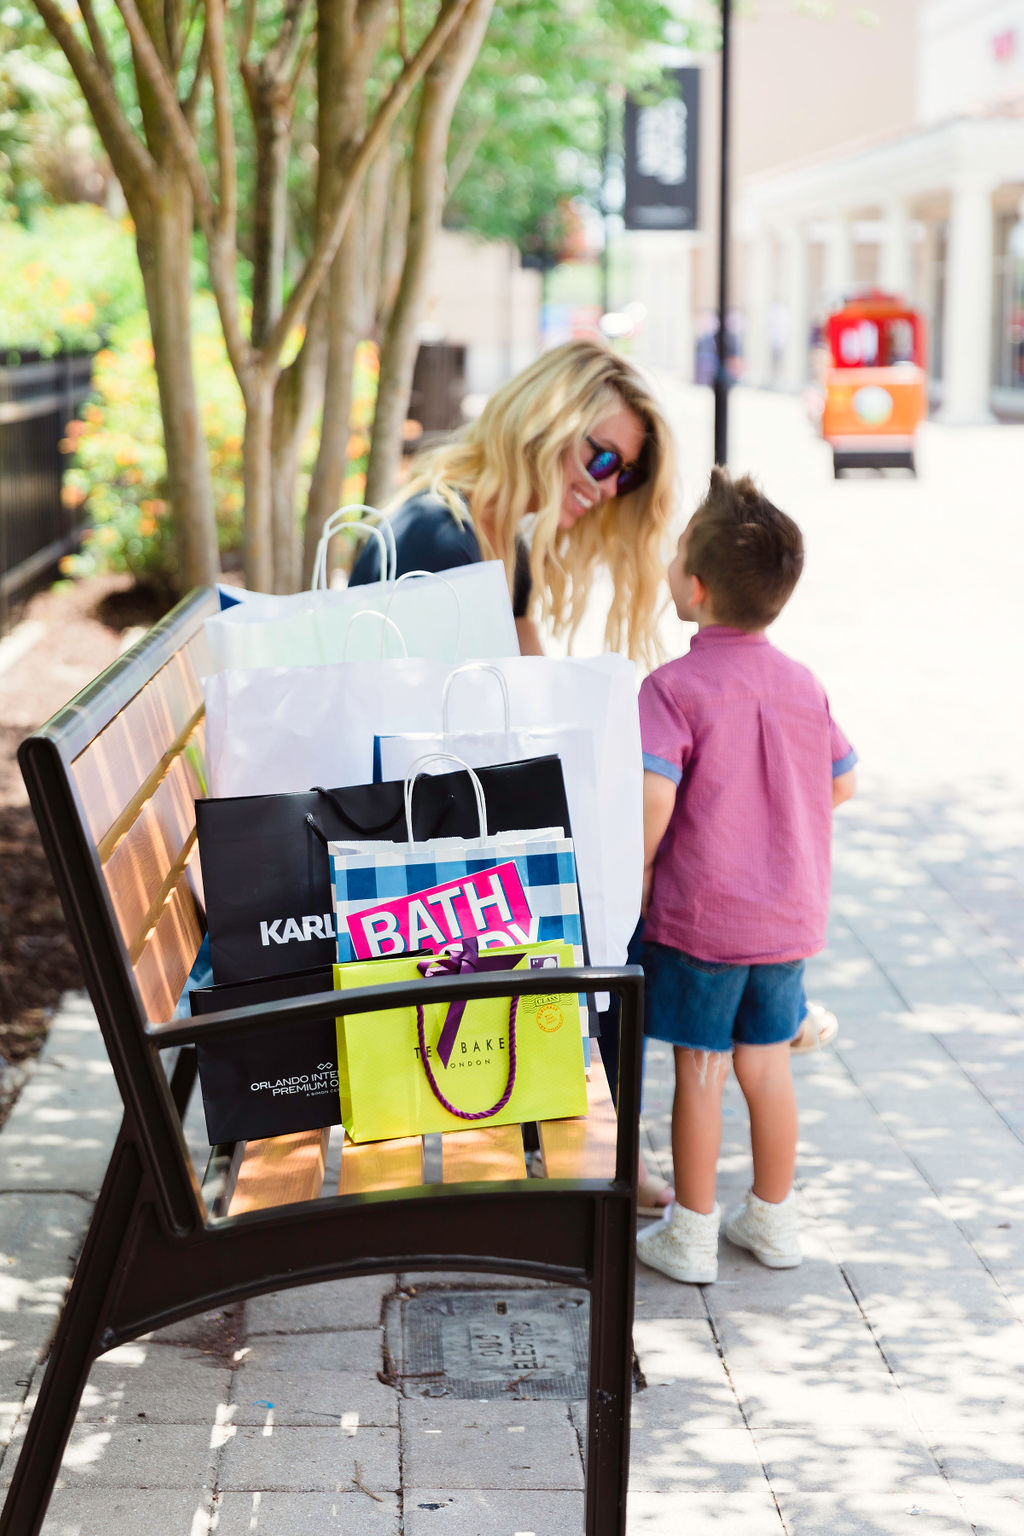 Cheap clothes for kids and moms in Orlando!! Budget shopping for summer kids style! Orlando Outlets Orlando Premium Outlets #momstyle #cheapmomclothes #cheapkidsclothes #orlandooutlets #orlandoshopping